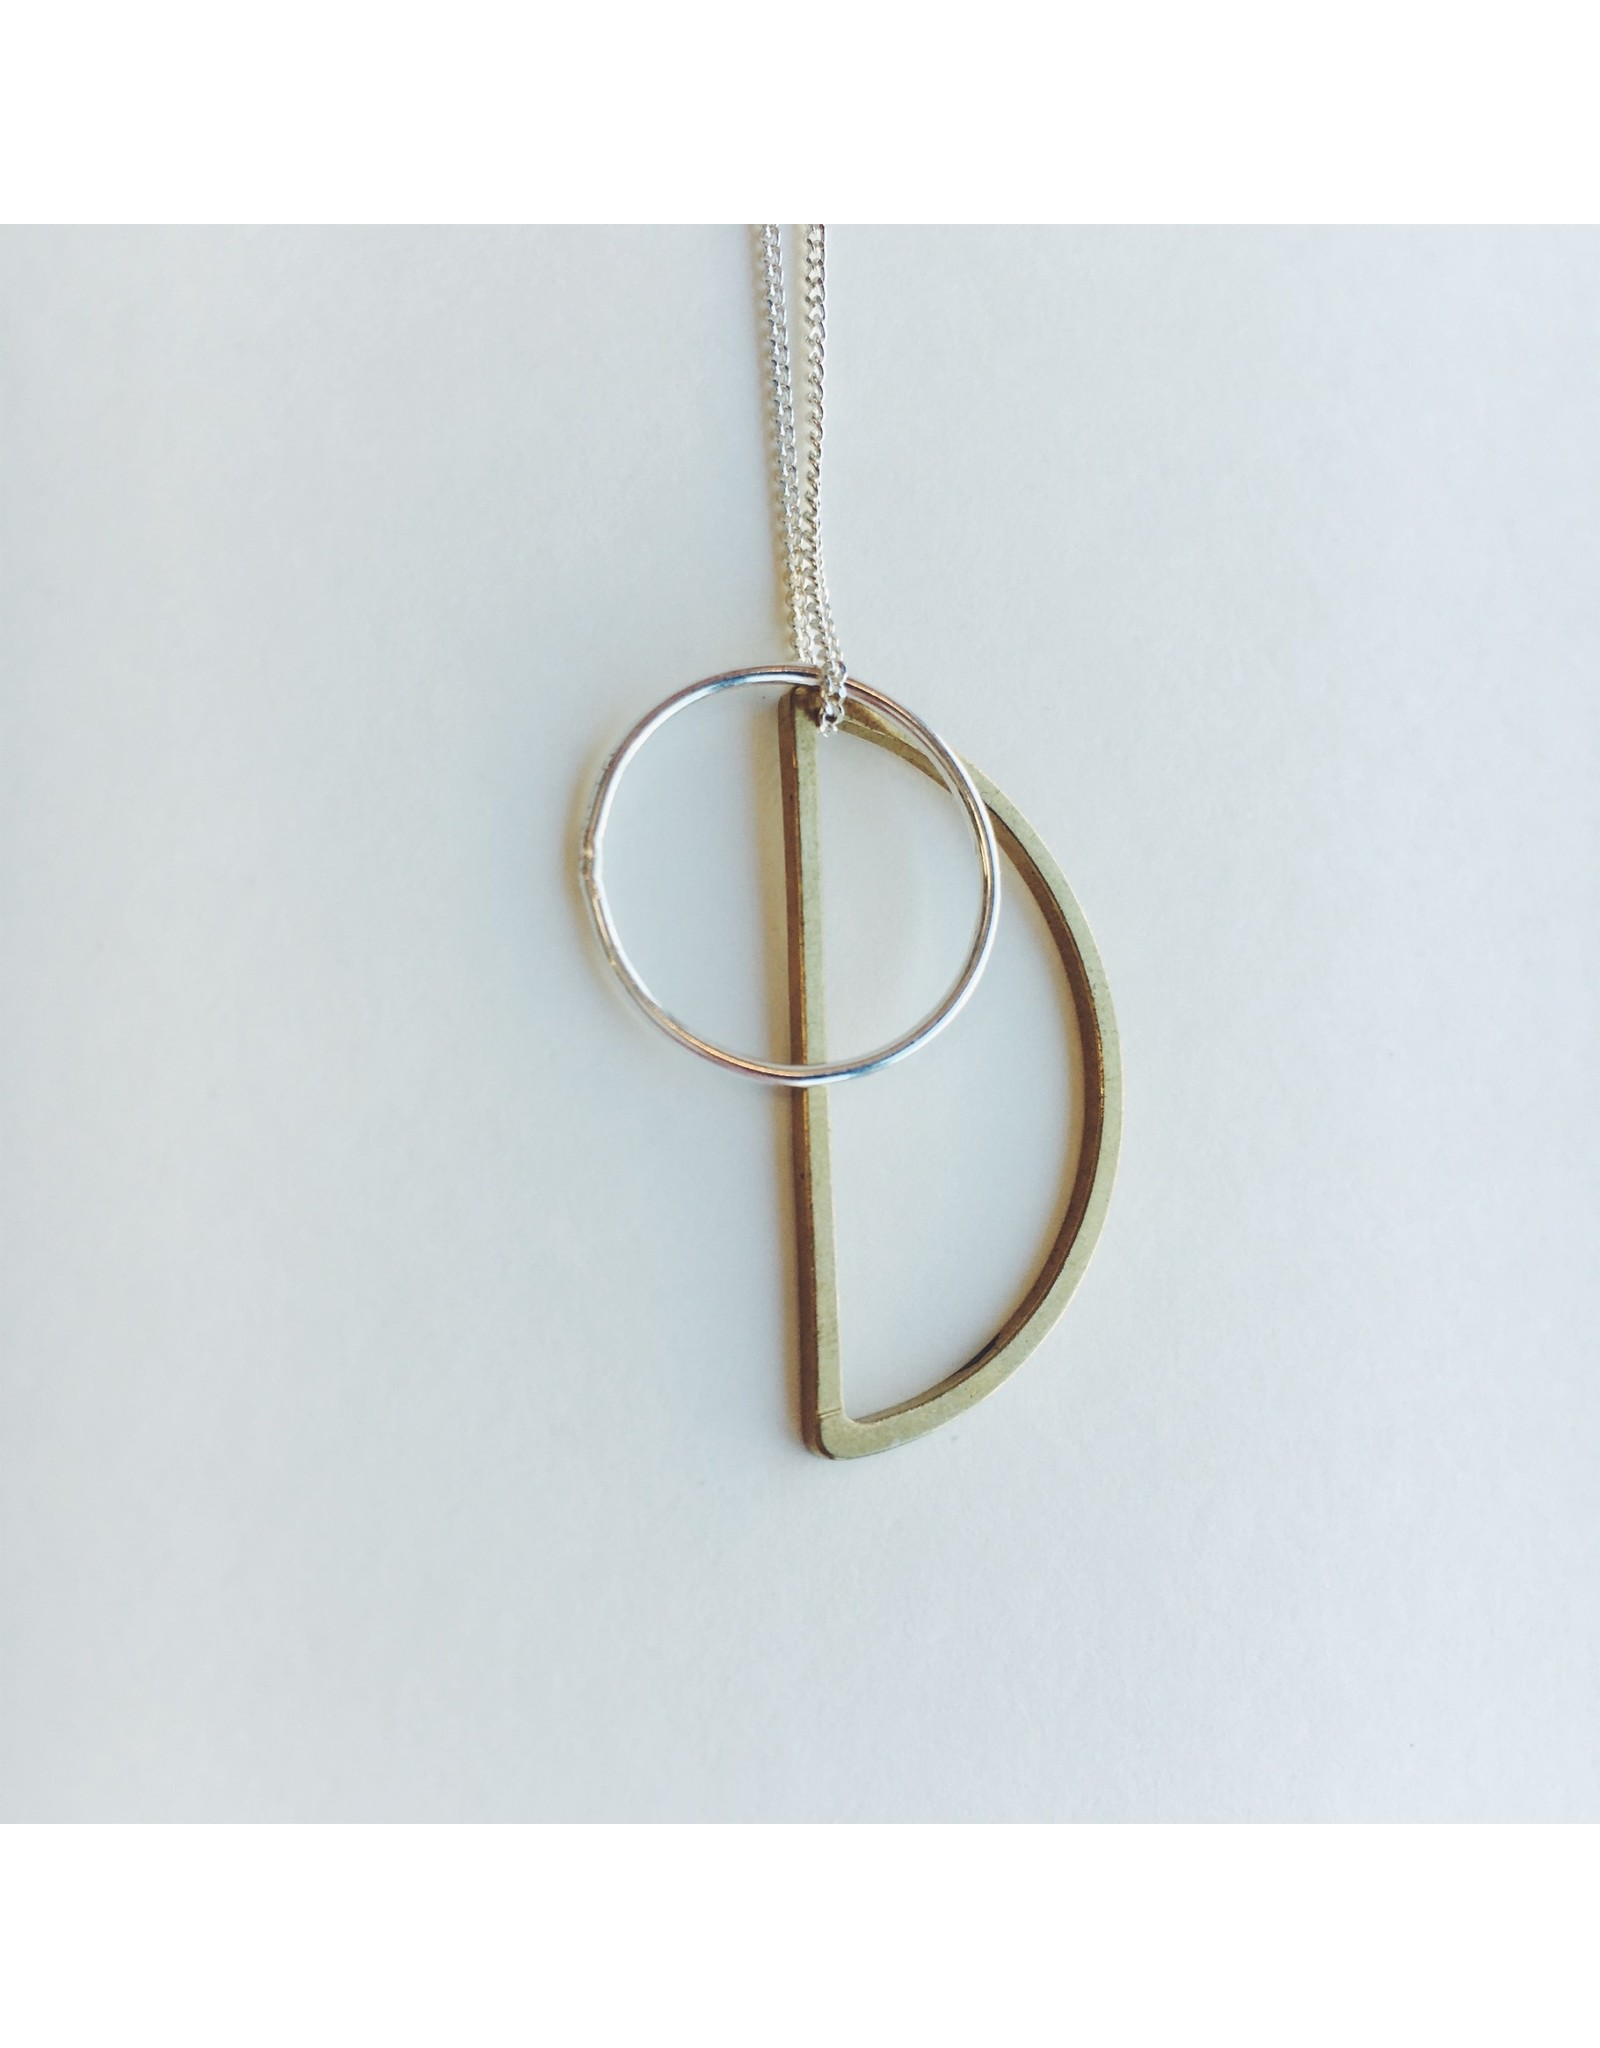 Locus Silver and Brass Necklace